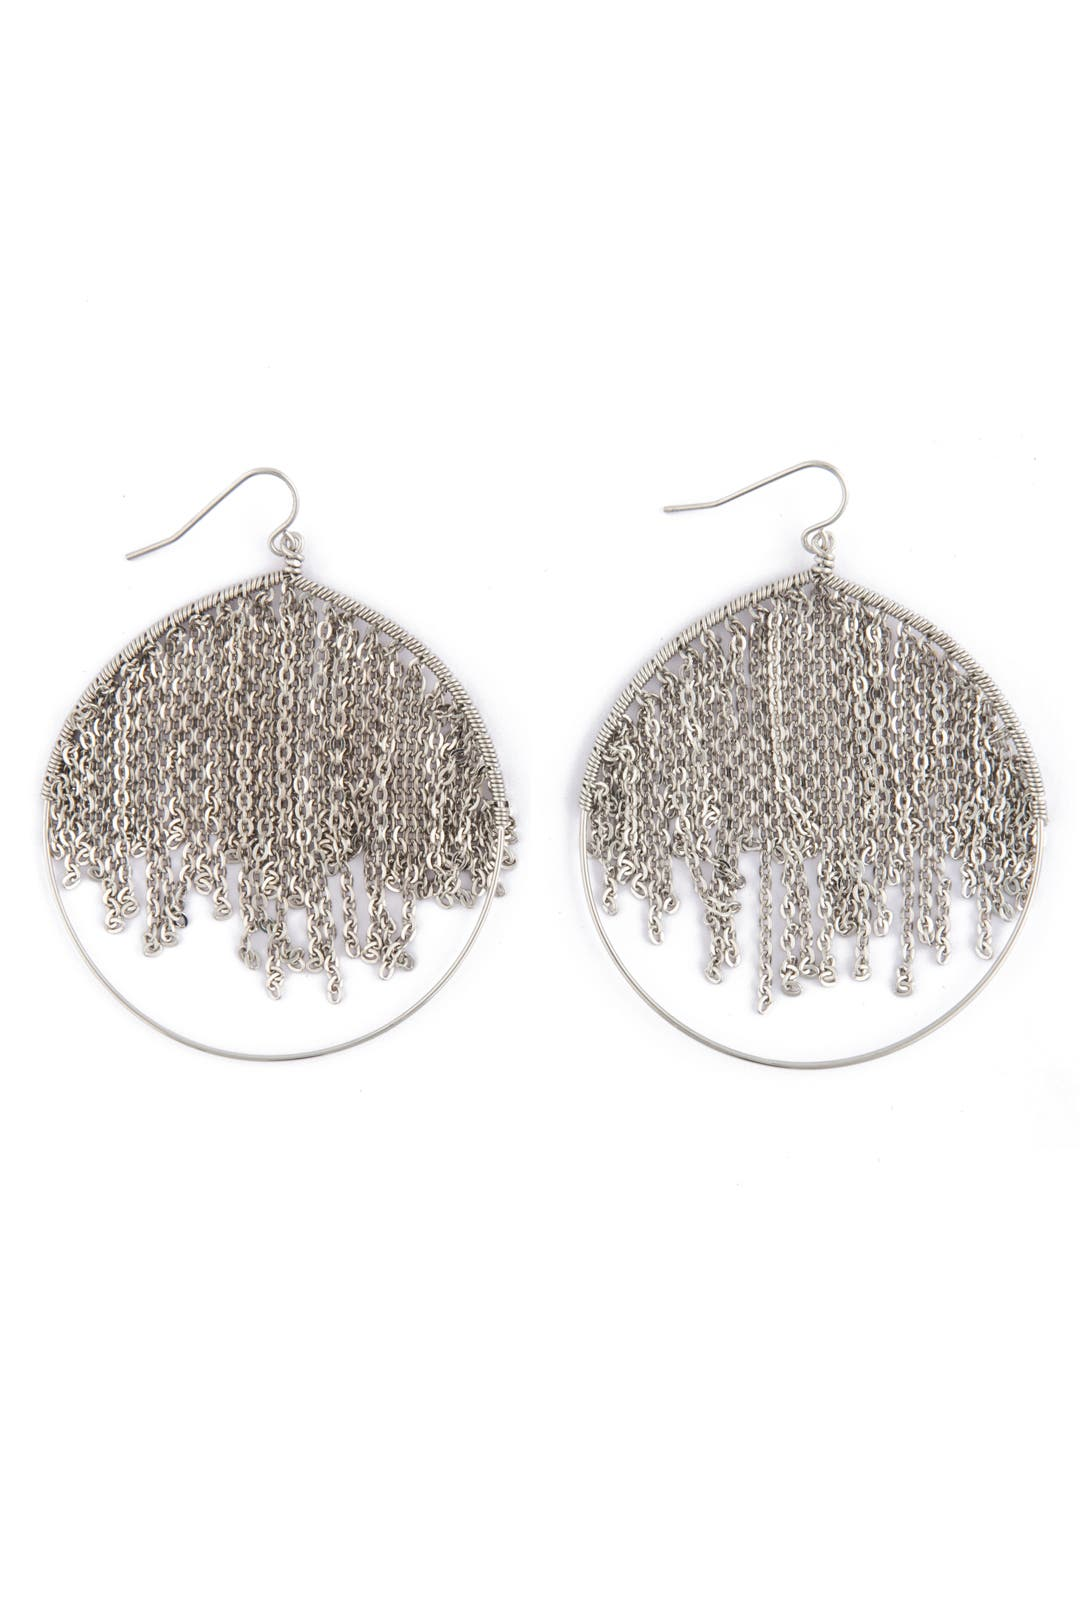 Silver Rain Earrings by Citrine by the Stones